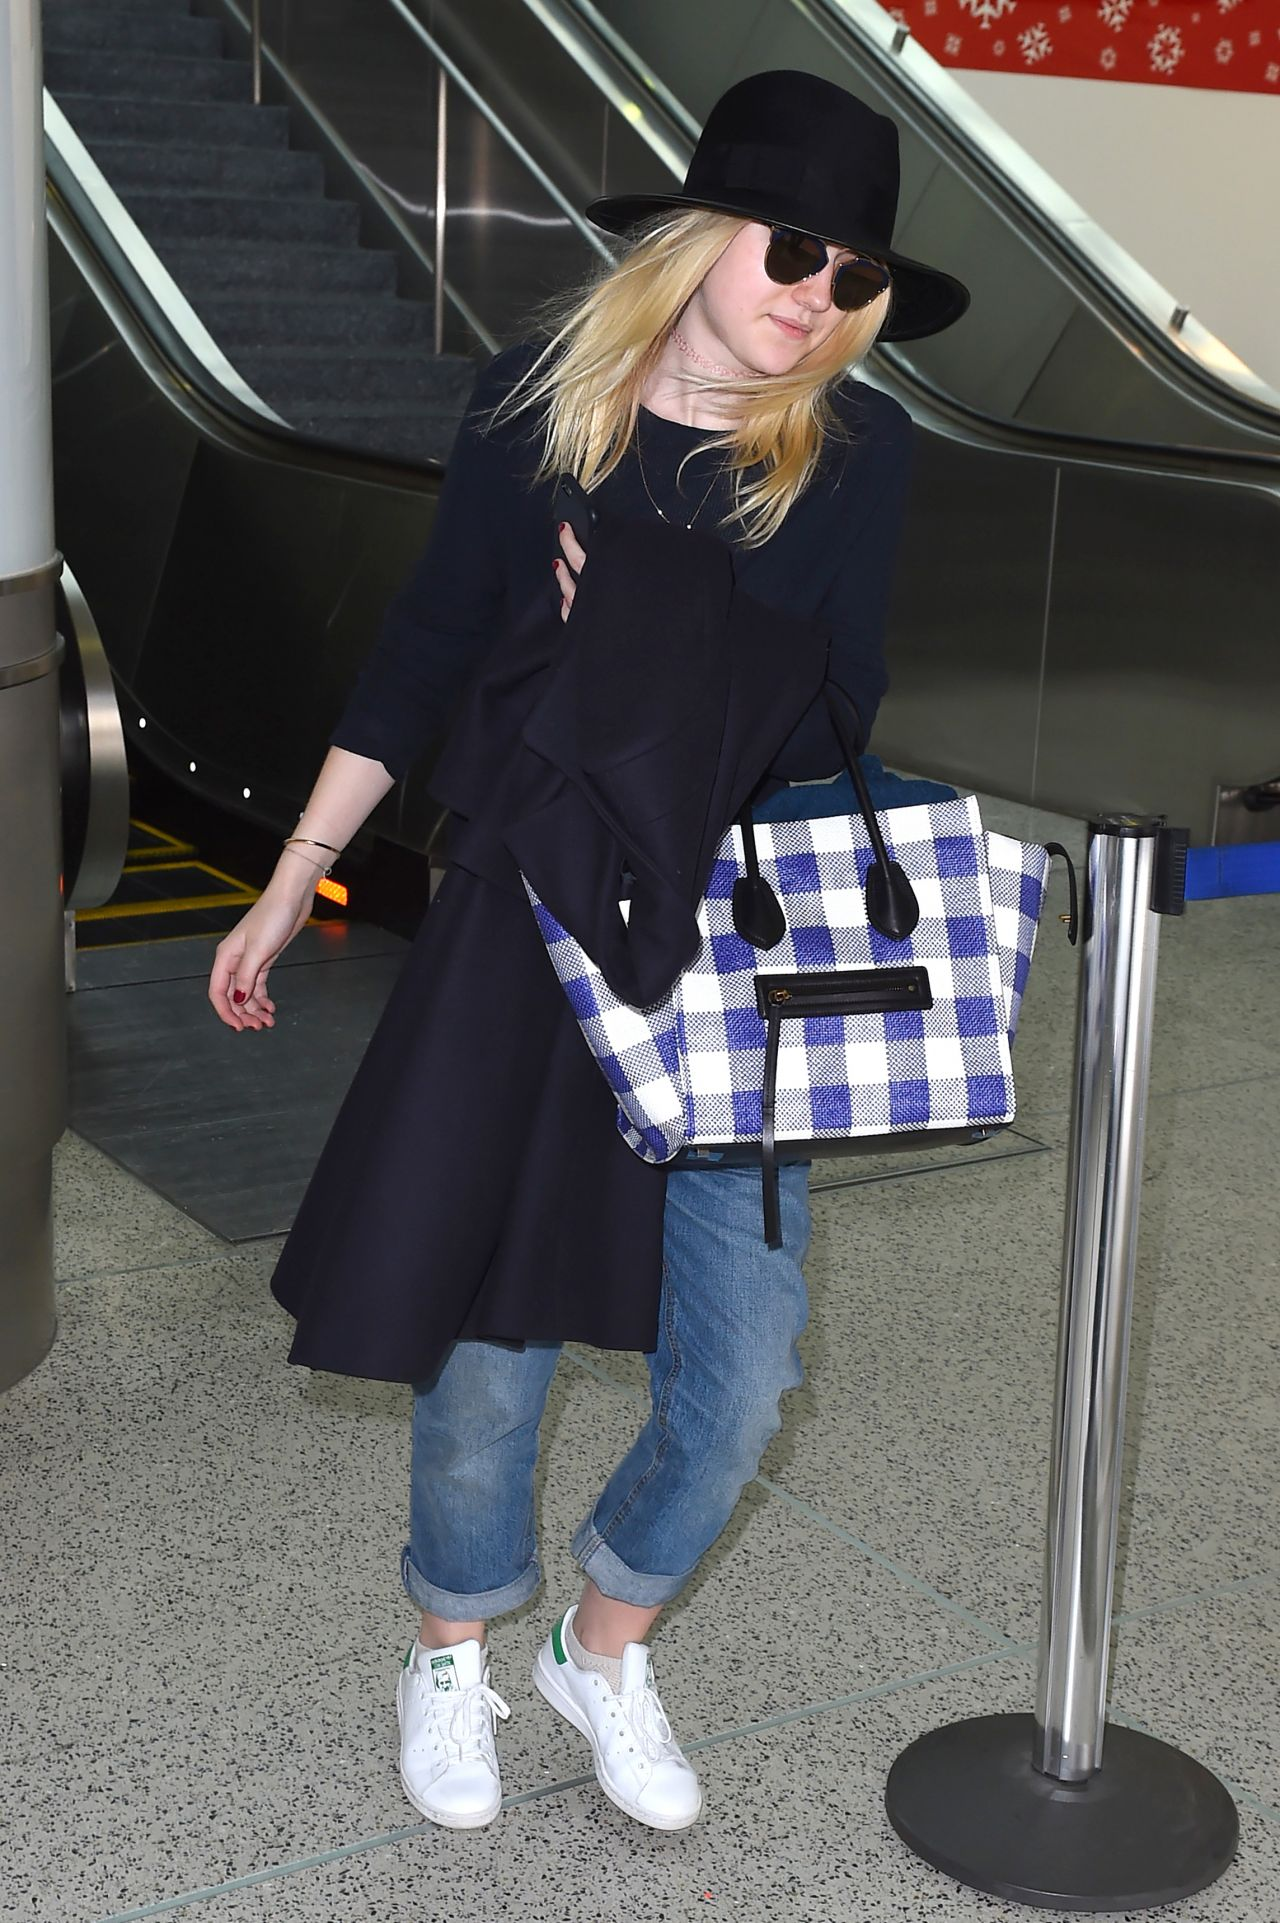 Dakota Fanning - LAX airport, December 2014 Dakota Fanning – LAX airport, December 2014